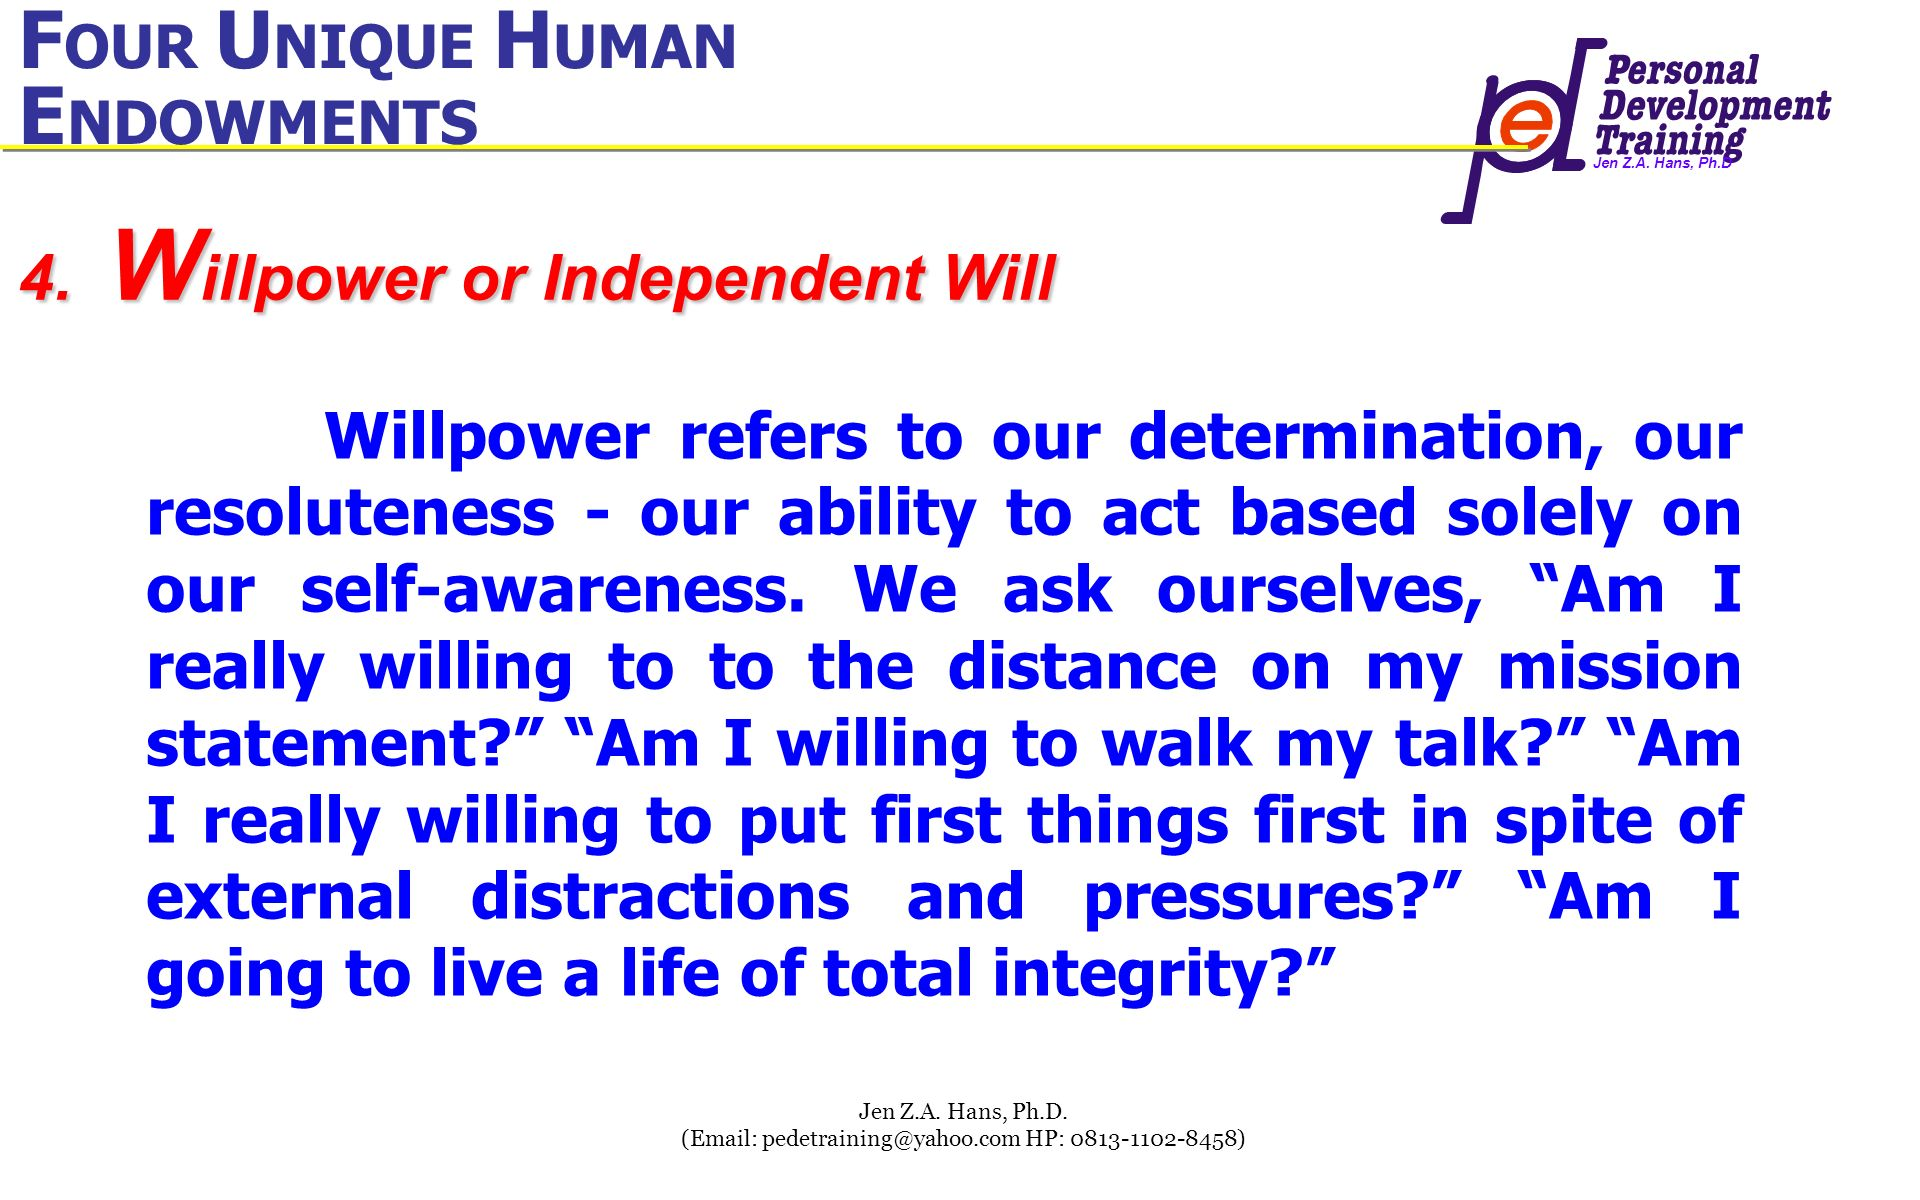 Jen Z.A. Hans, Ph.D Jen Z.A. Hans, Ph.D. (Email: pedetraining@yahoo.com HP: 0813-1102-8458) Willpower refers to our determination, our resoluteness -